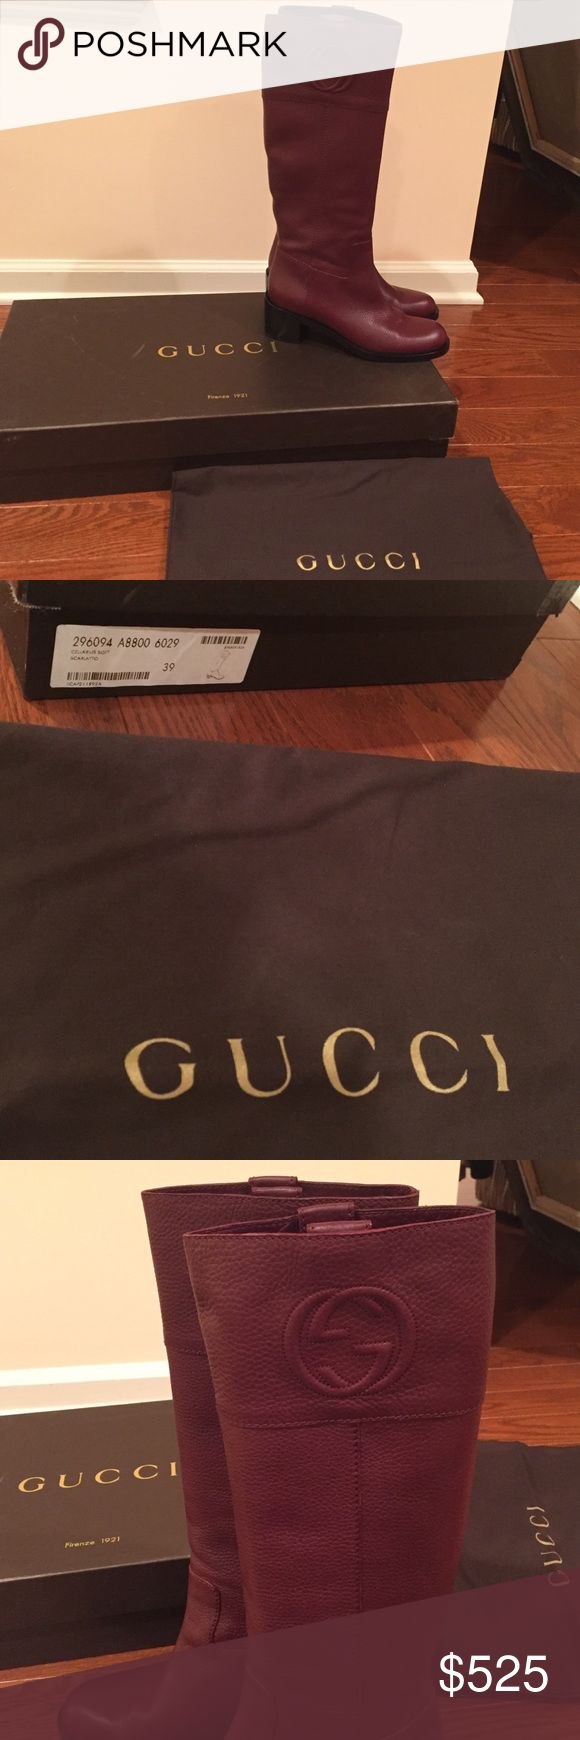 $1795 New Gucci Cellarius Scarlatto Riding Boots Nearly brand new and only worn once, these Gucci riding boots come with their box and dust bag. They can easily be authenticated at any Gucci boutique or luxury department store. They run true to size and can comfortably fit 38.5-39.5 (8.5-9.5). No trading or bargaining. These were purchased for over $1800 after taxes and have nearly spotless soles as well as very high quality genuine soft leather. Color is a beautiful wine red color. Gucci…